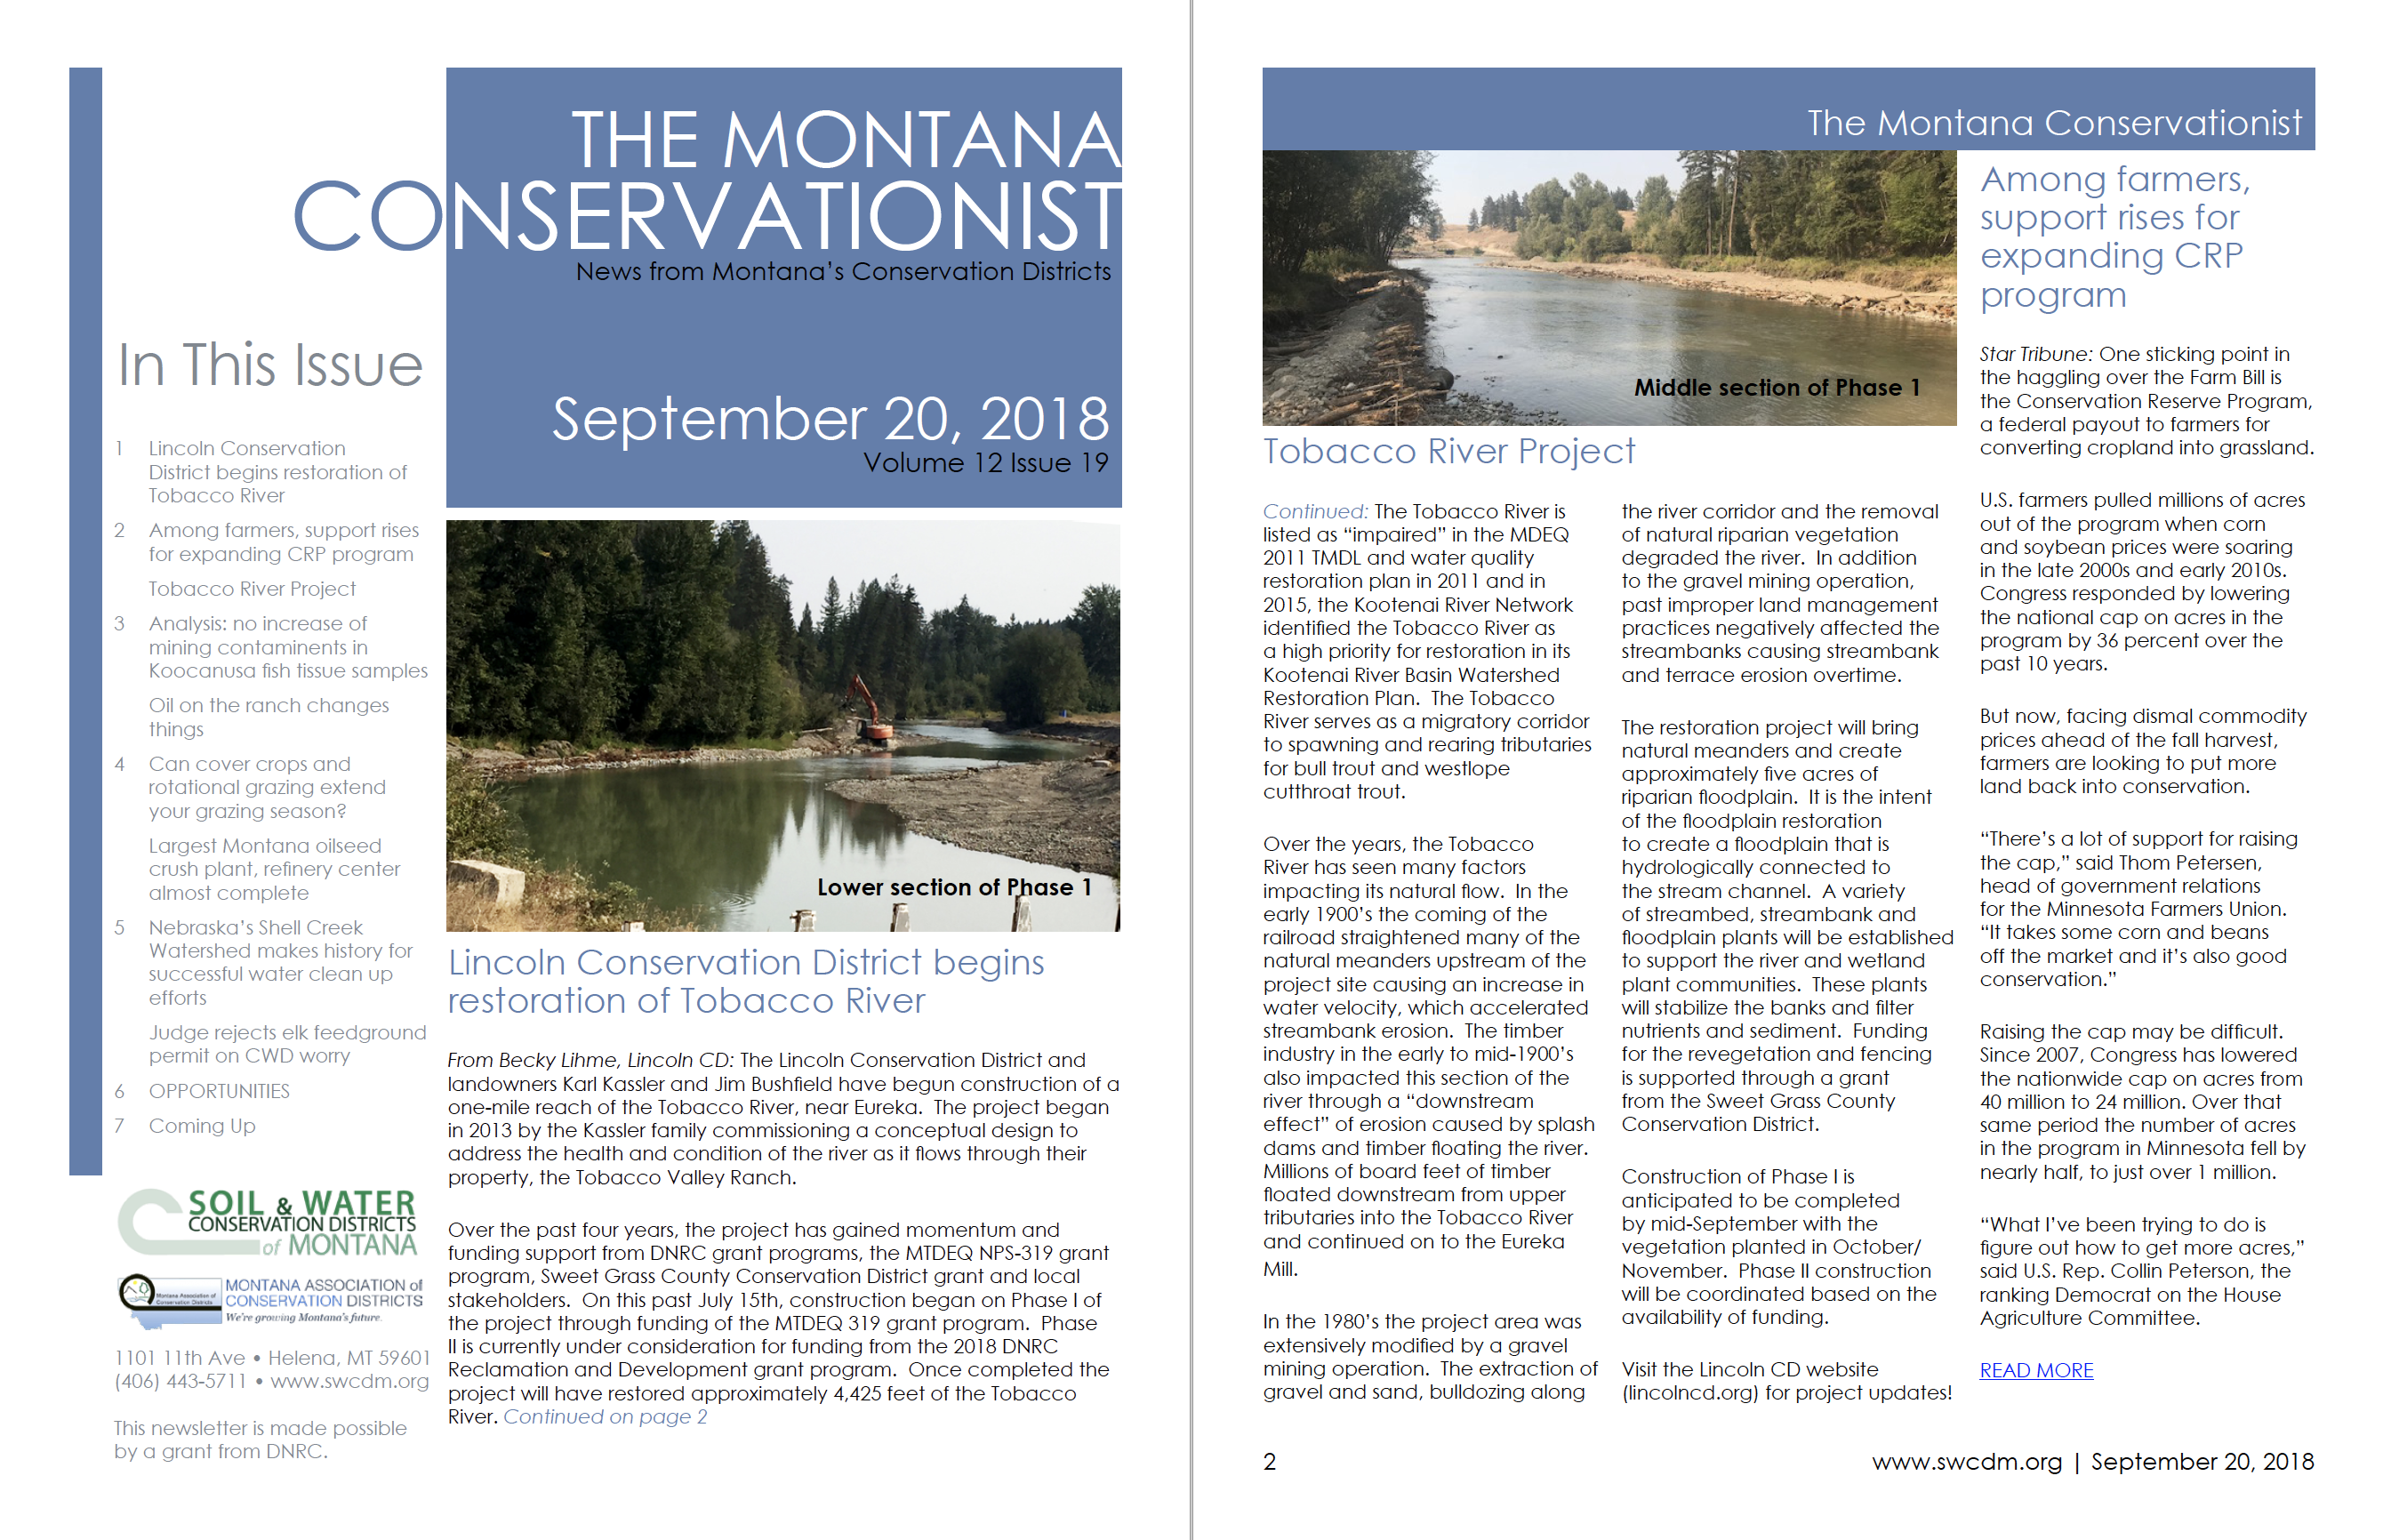 The Montana Conservationist September 20